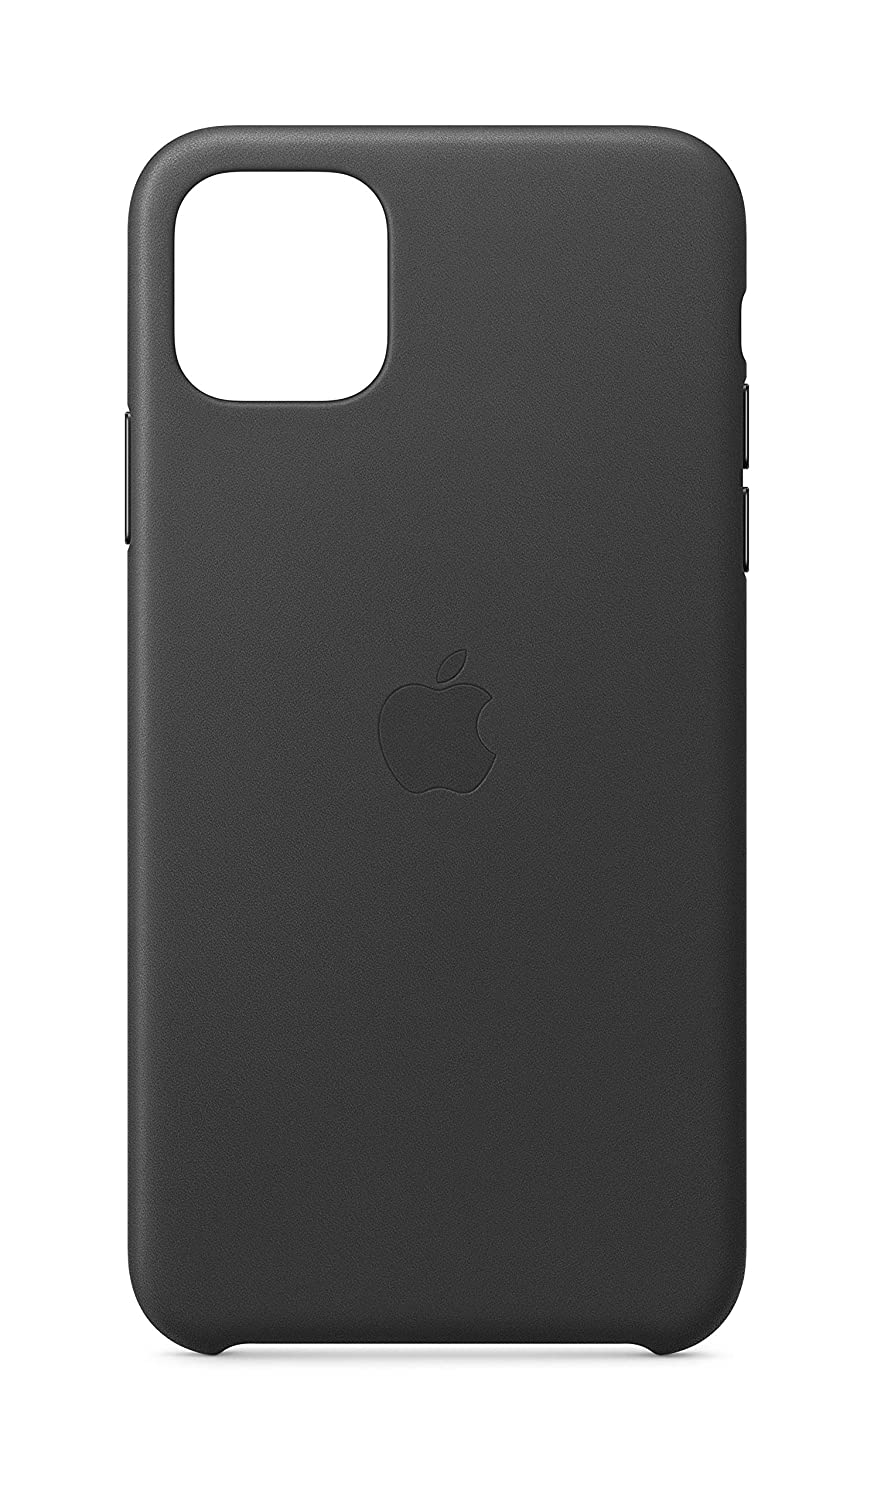 Funda Oficial De Apple Cuero Para iPhone Pro Max, Negra